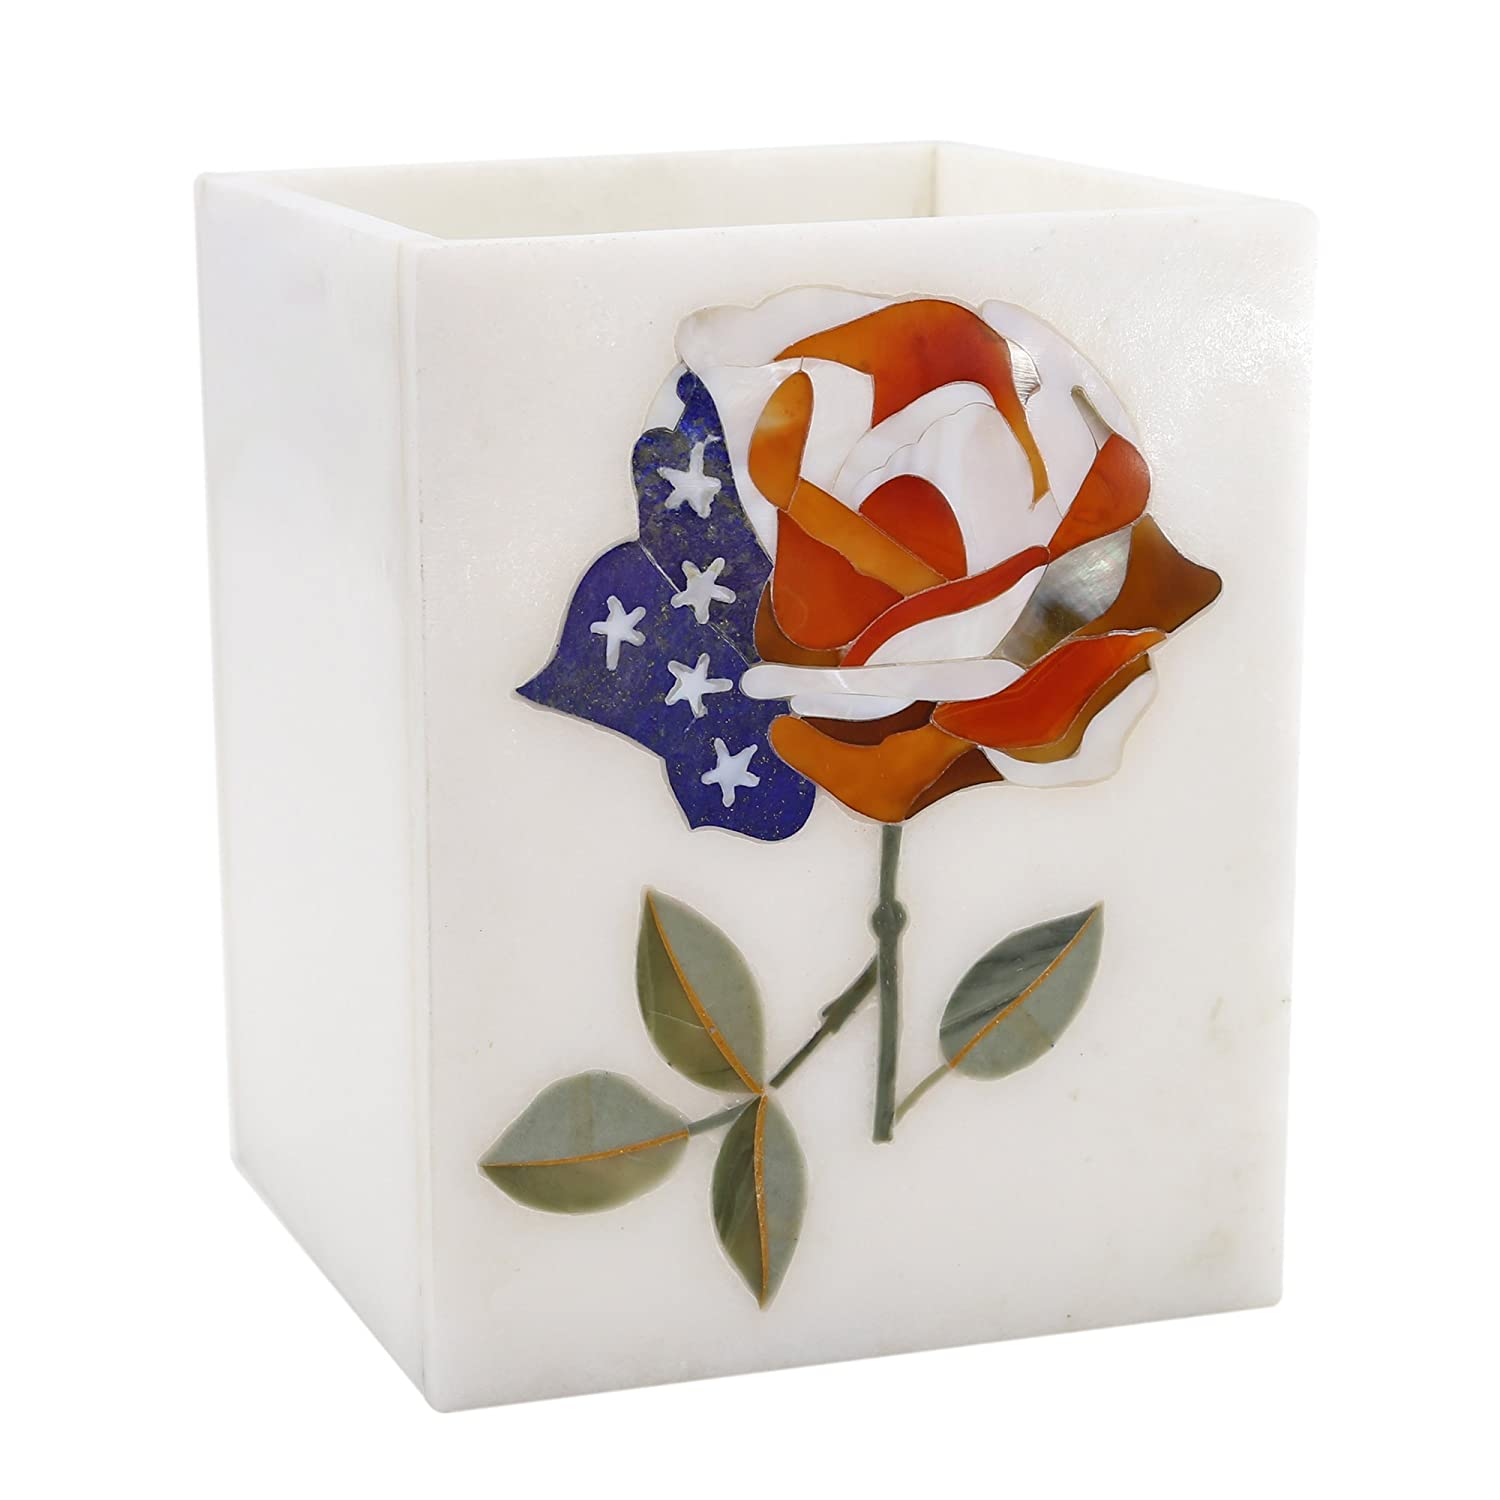 Handcrafted Design and Inlaid with Pure Natural and Semi Precious Stones Perfect Gift Abstract Patriotic Rose Design Reevaria Pietra dura Marble Flower Pen Holder